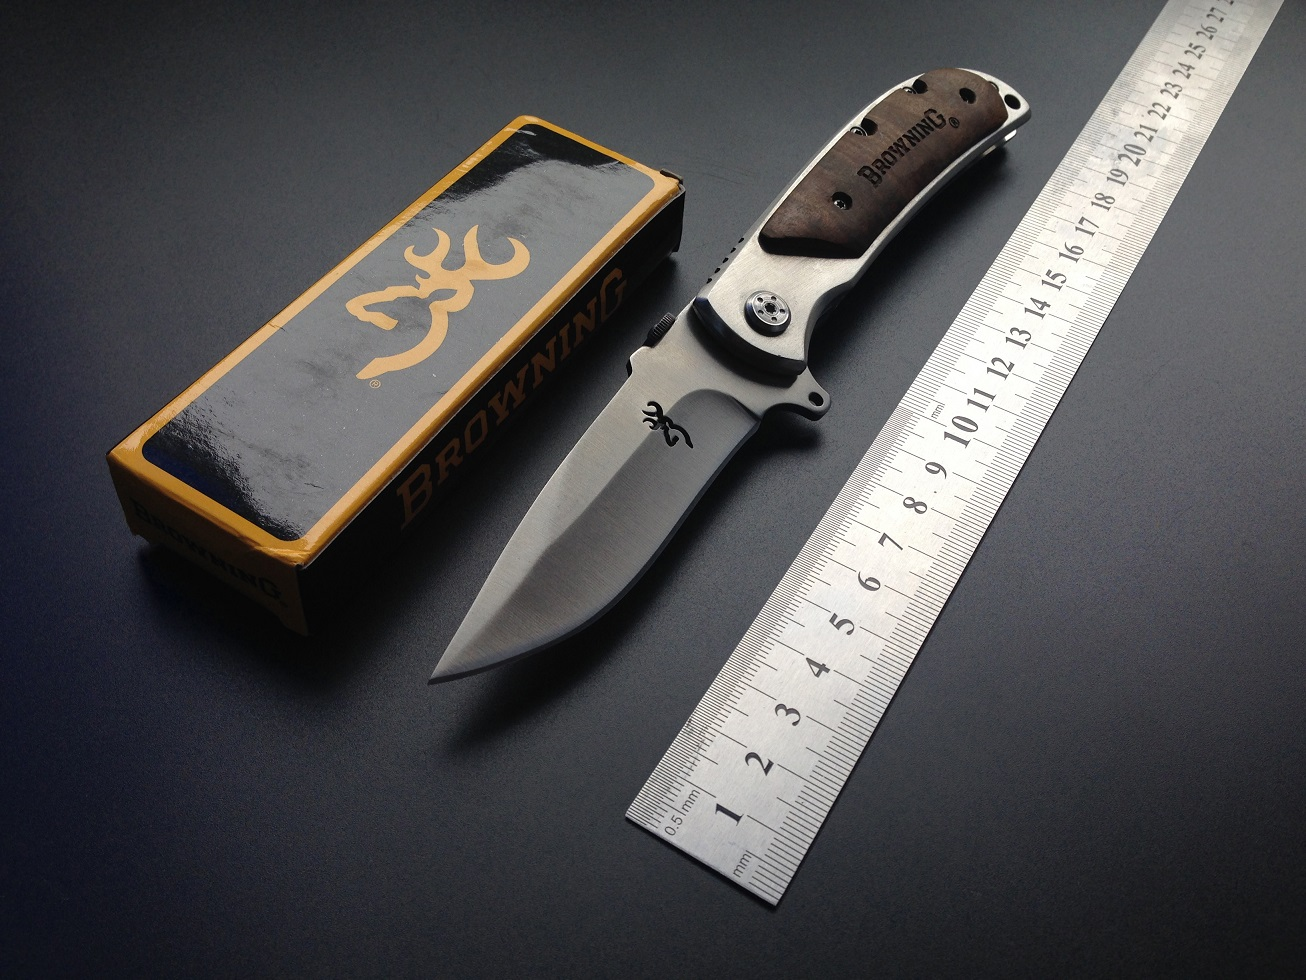 Browning 338 Folding Knife Pocket Mini Portable Outdoor Camping Survival Knives Hunting Knife Free Shipping<br><br>Aliexpress